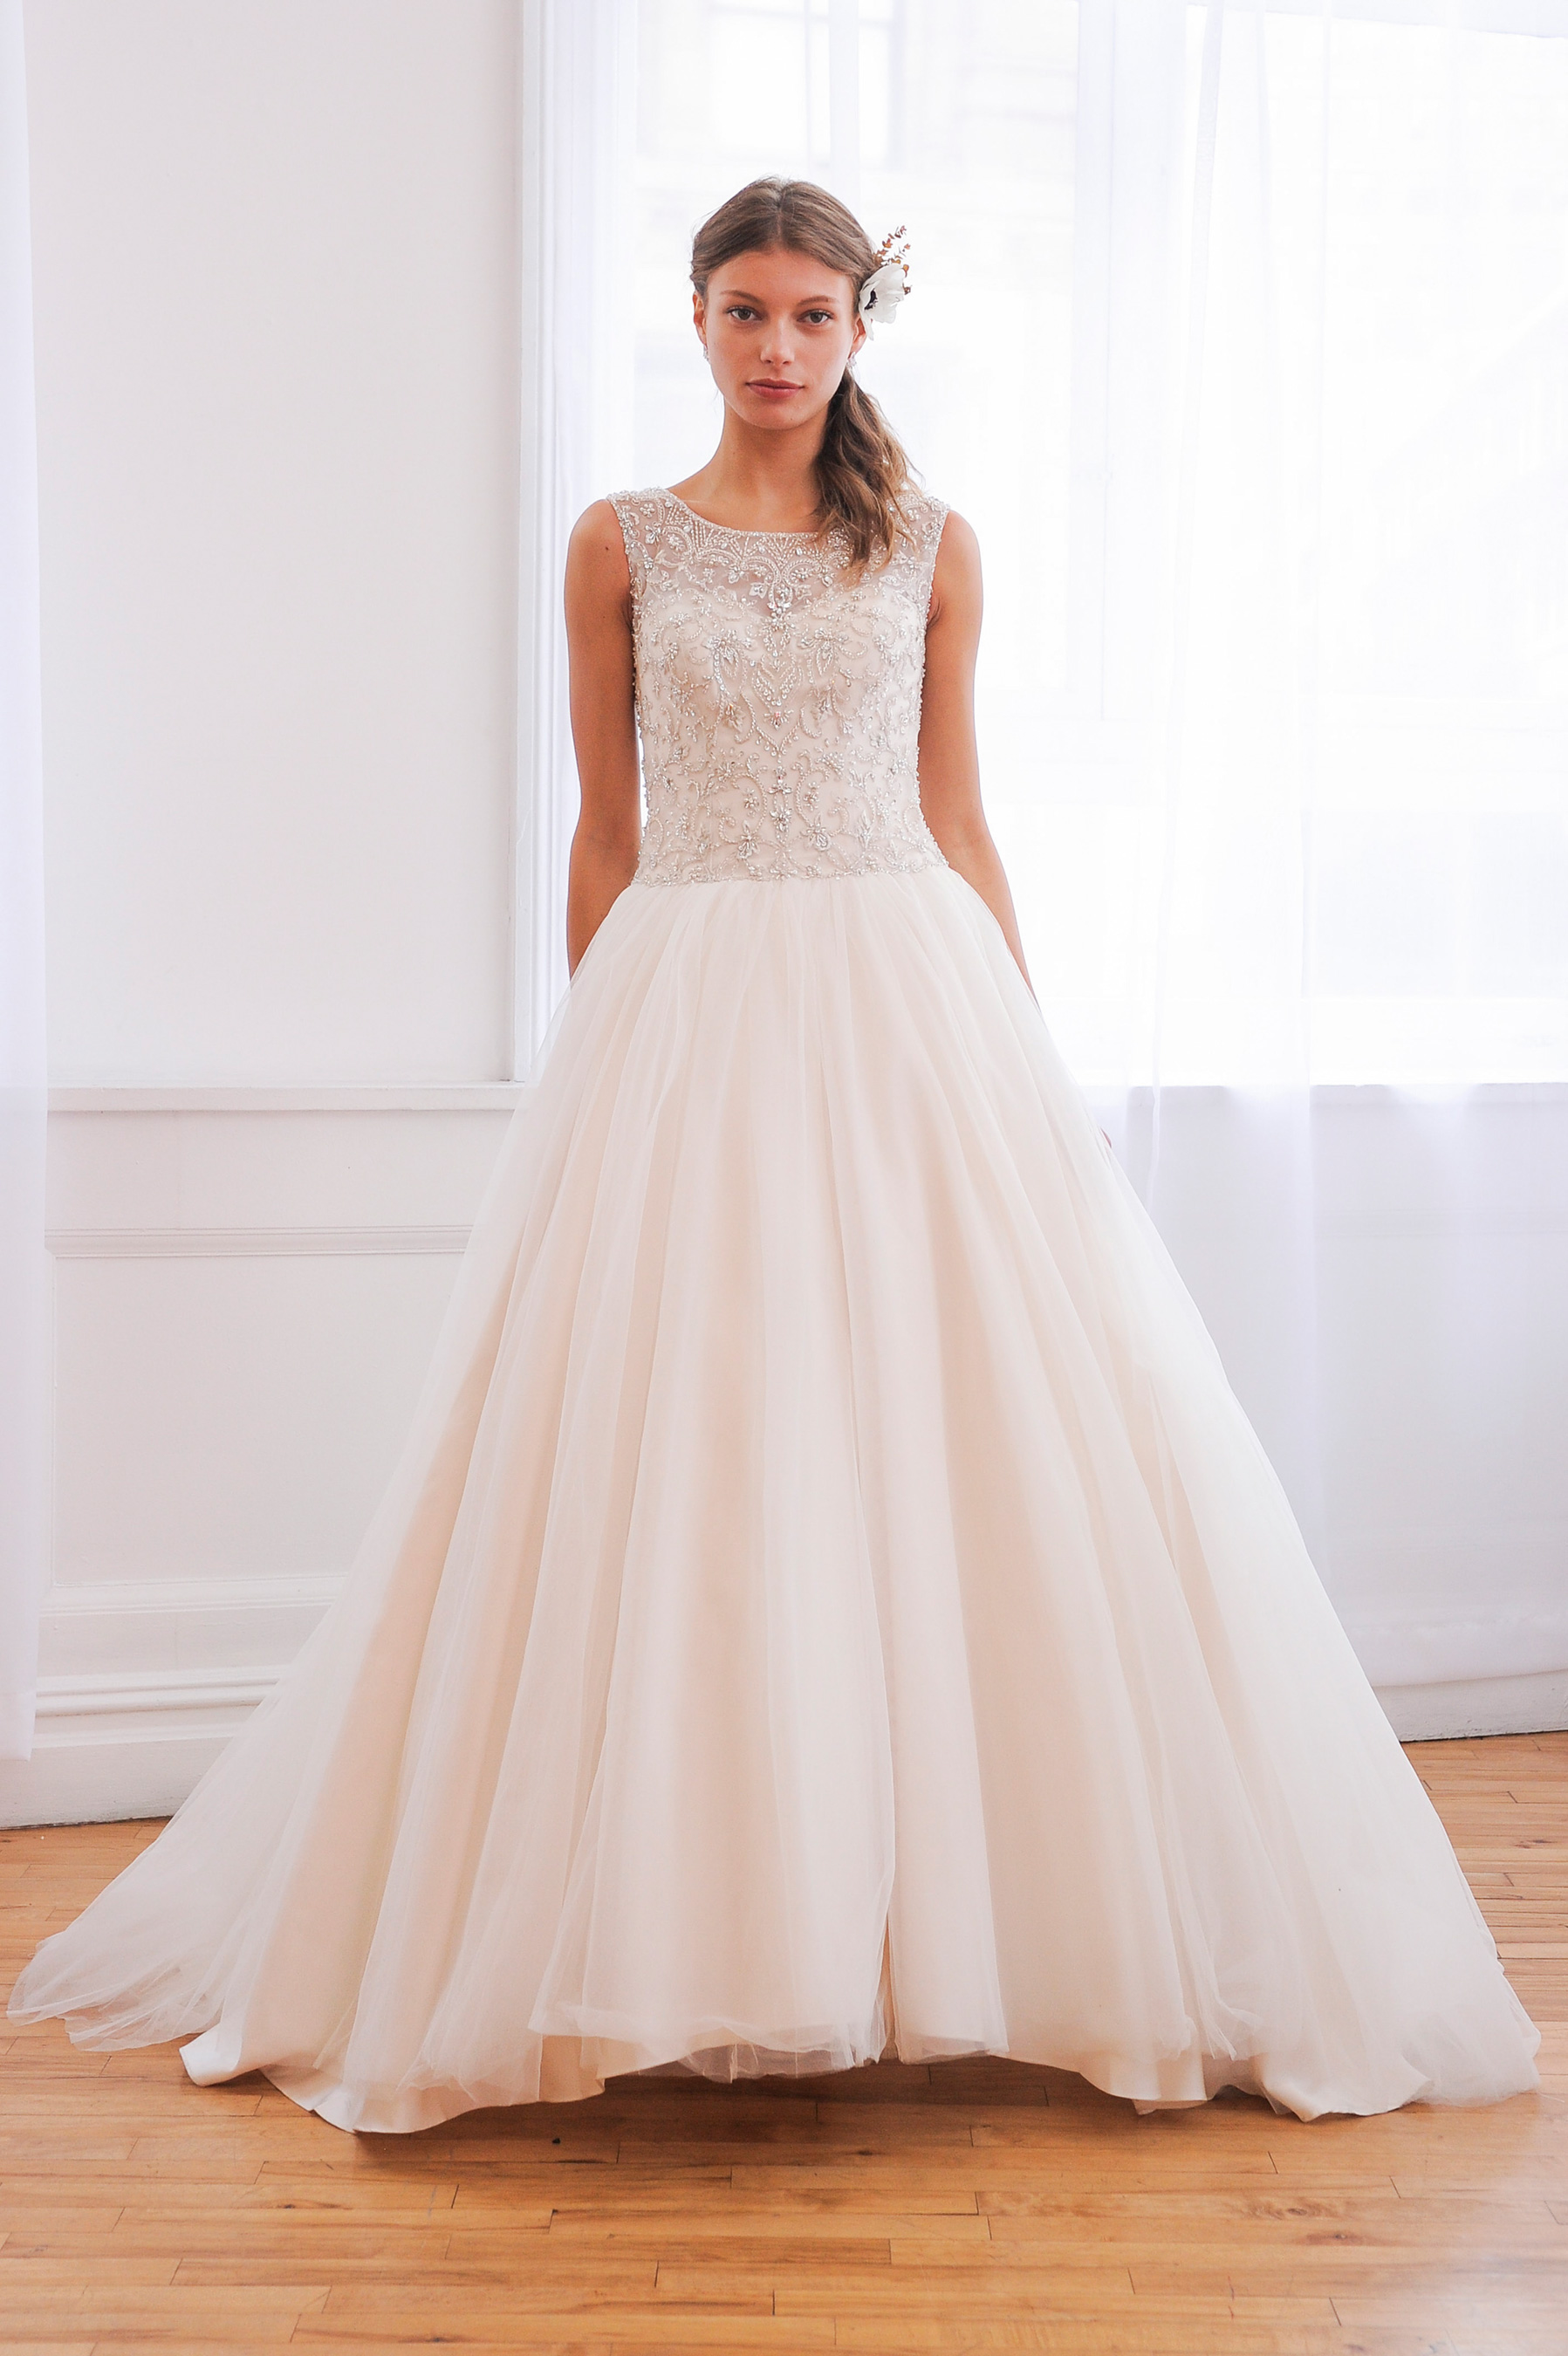 Welcome to David's Bridal New York, New York store, serving brides and special occasion customers of Cliffside Park, Fairview, Hoboken and more. David's Bridal is the ultimate one-stop shop for wedding dresses and all your formal apparel.